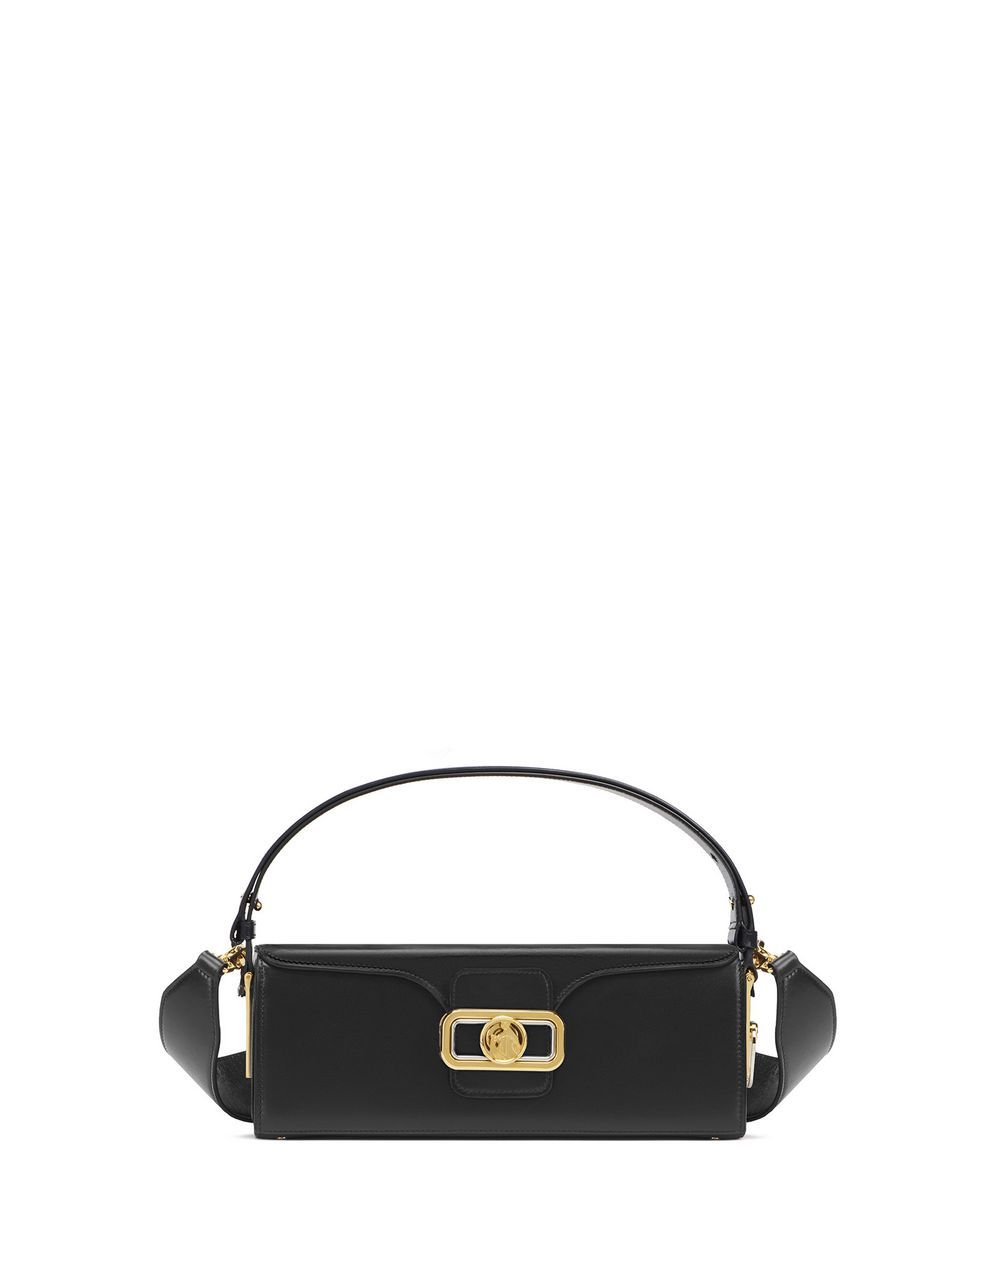 PENCIL BAG - Lanvin